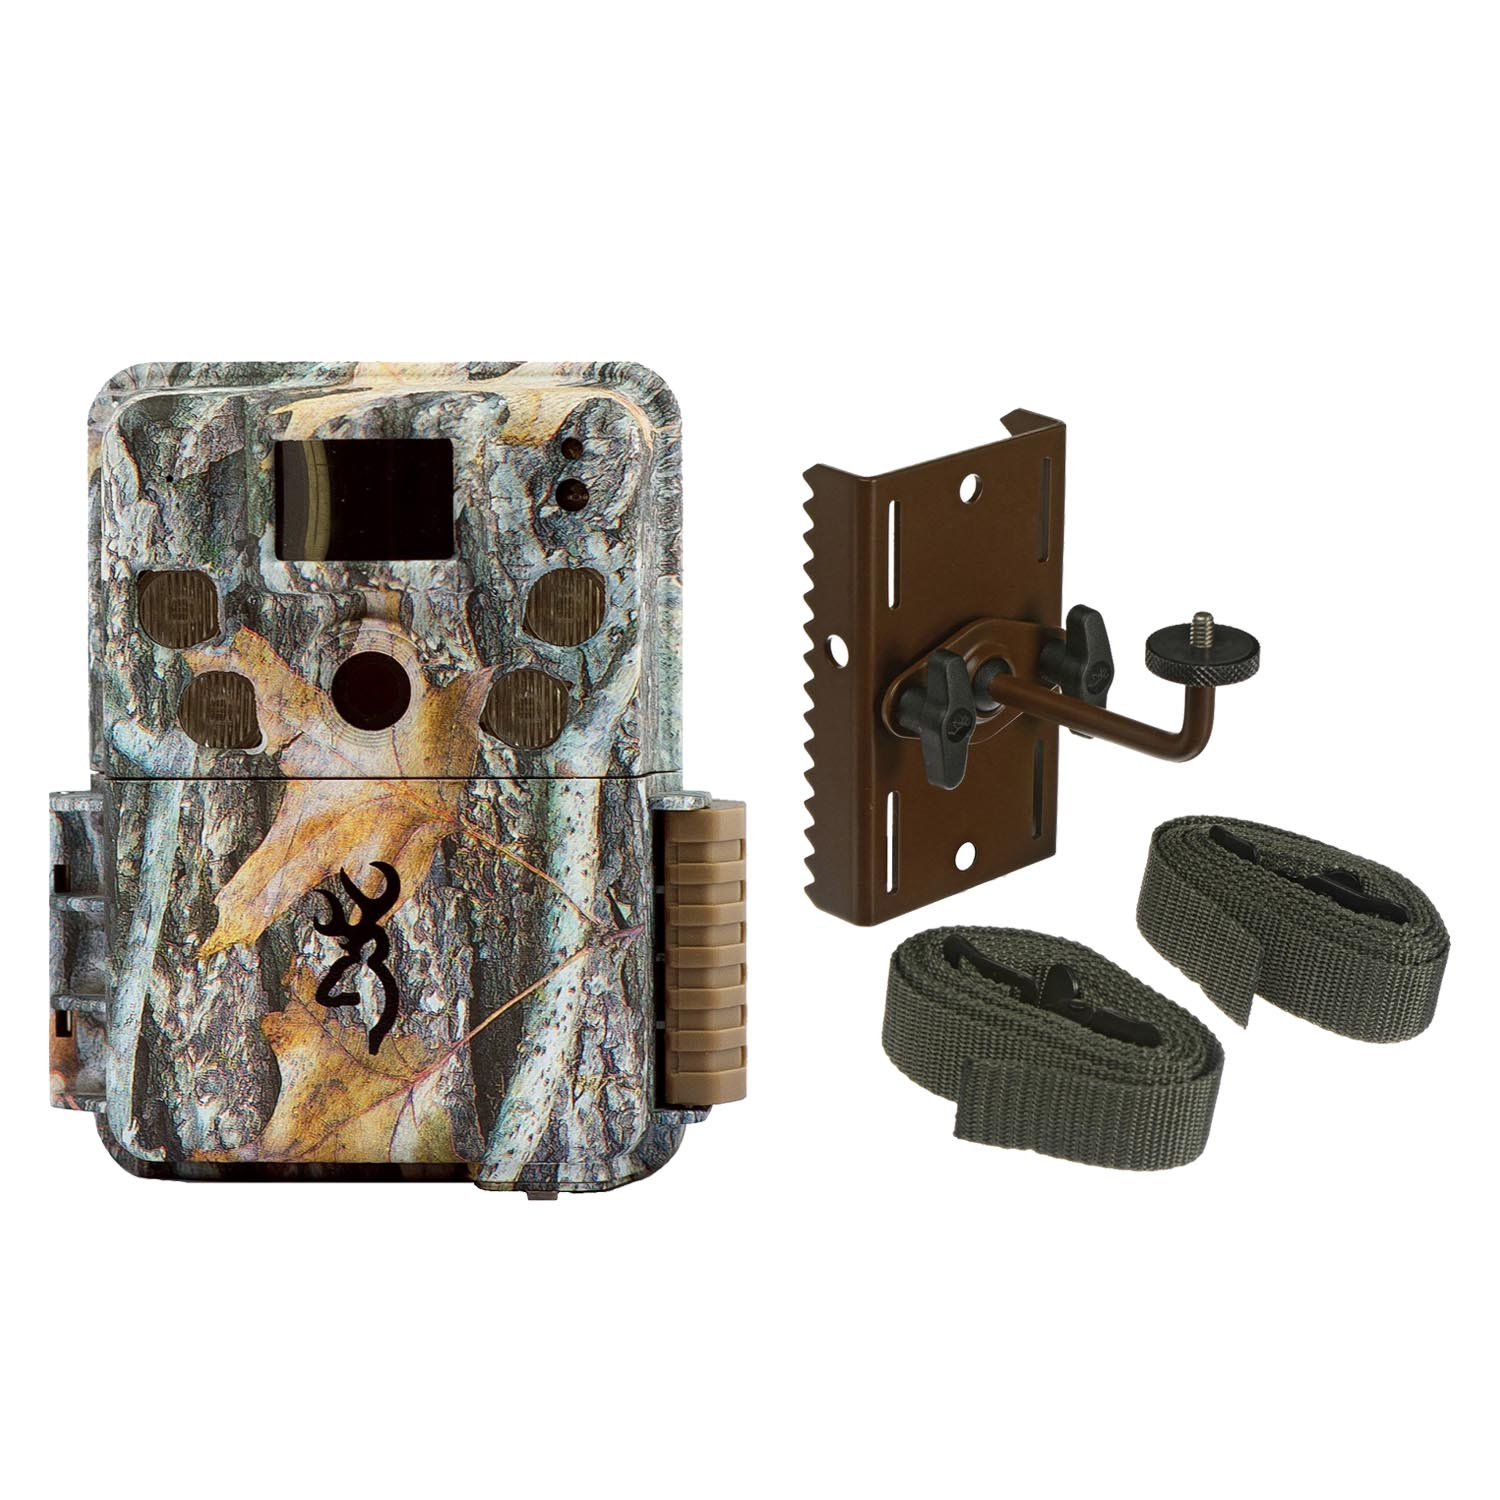 Browning Trail Cameras Strike Force Pro HD Video 18MP Game Camera + Tree Mount by Browning Trail Cameras